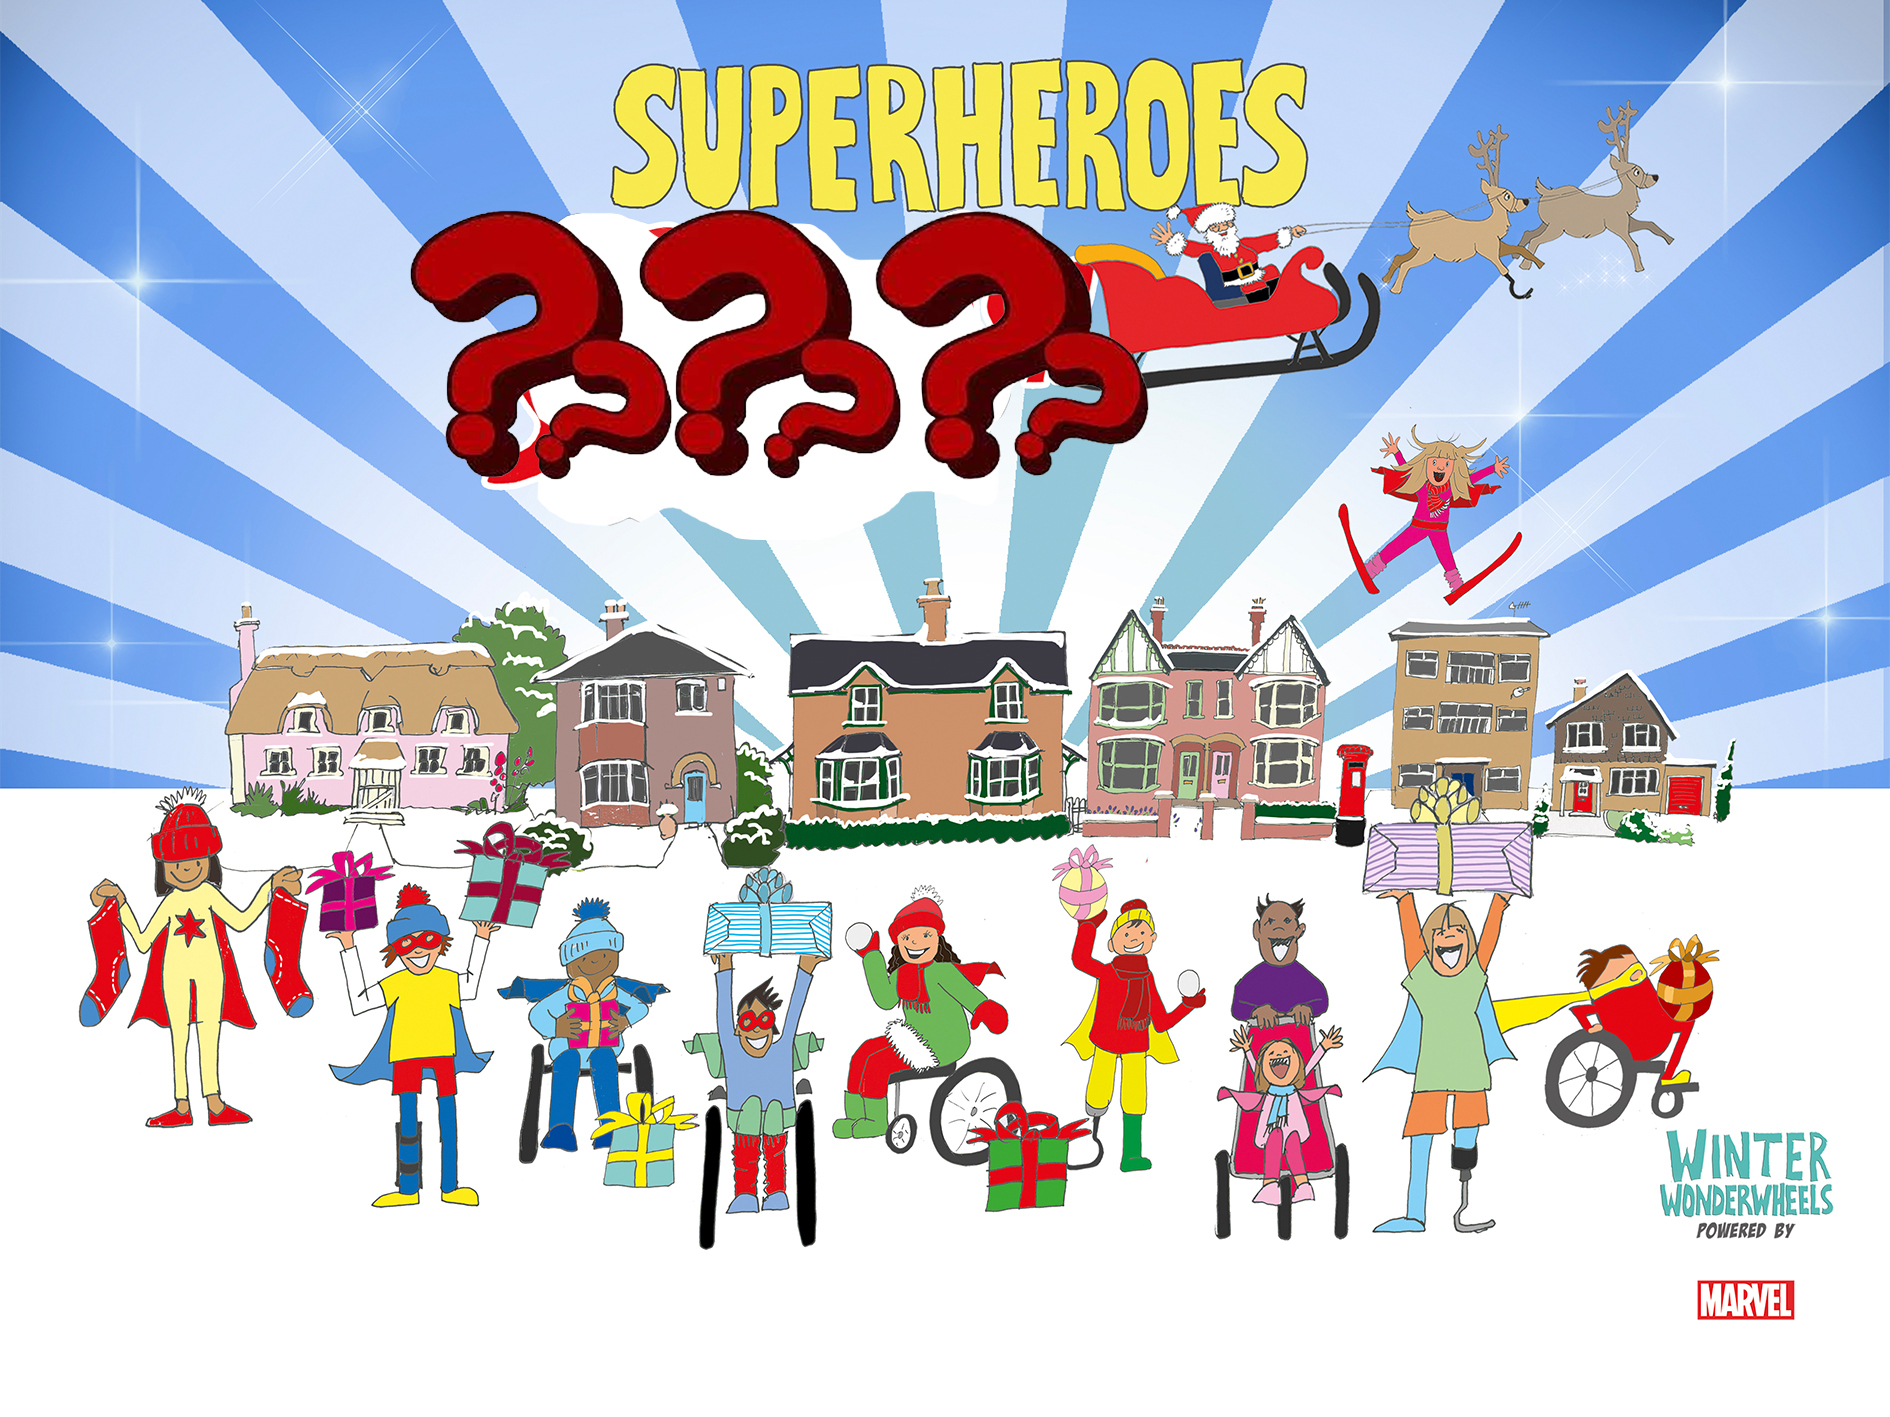 Superhero Series launches new winter events